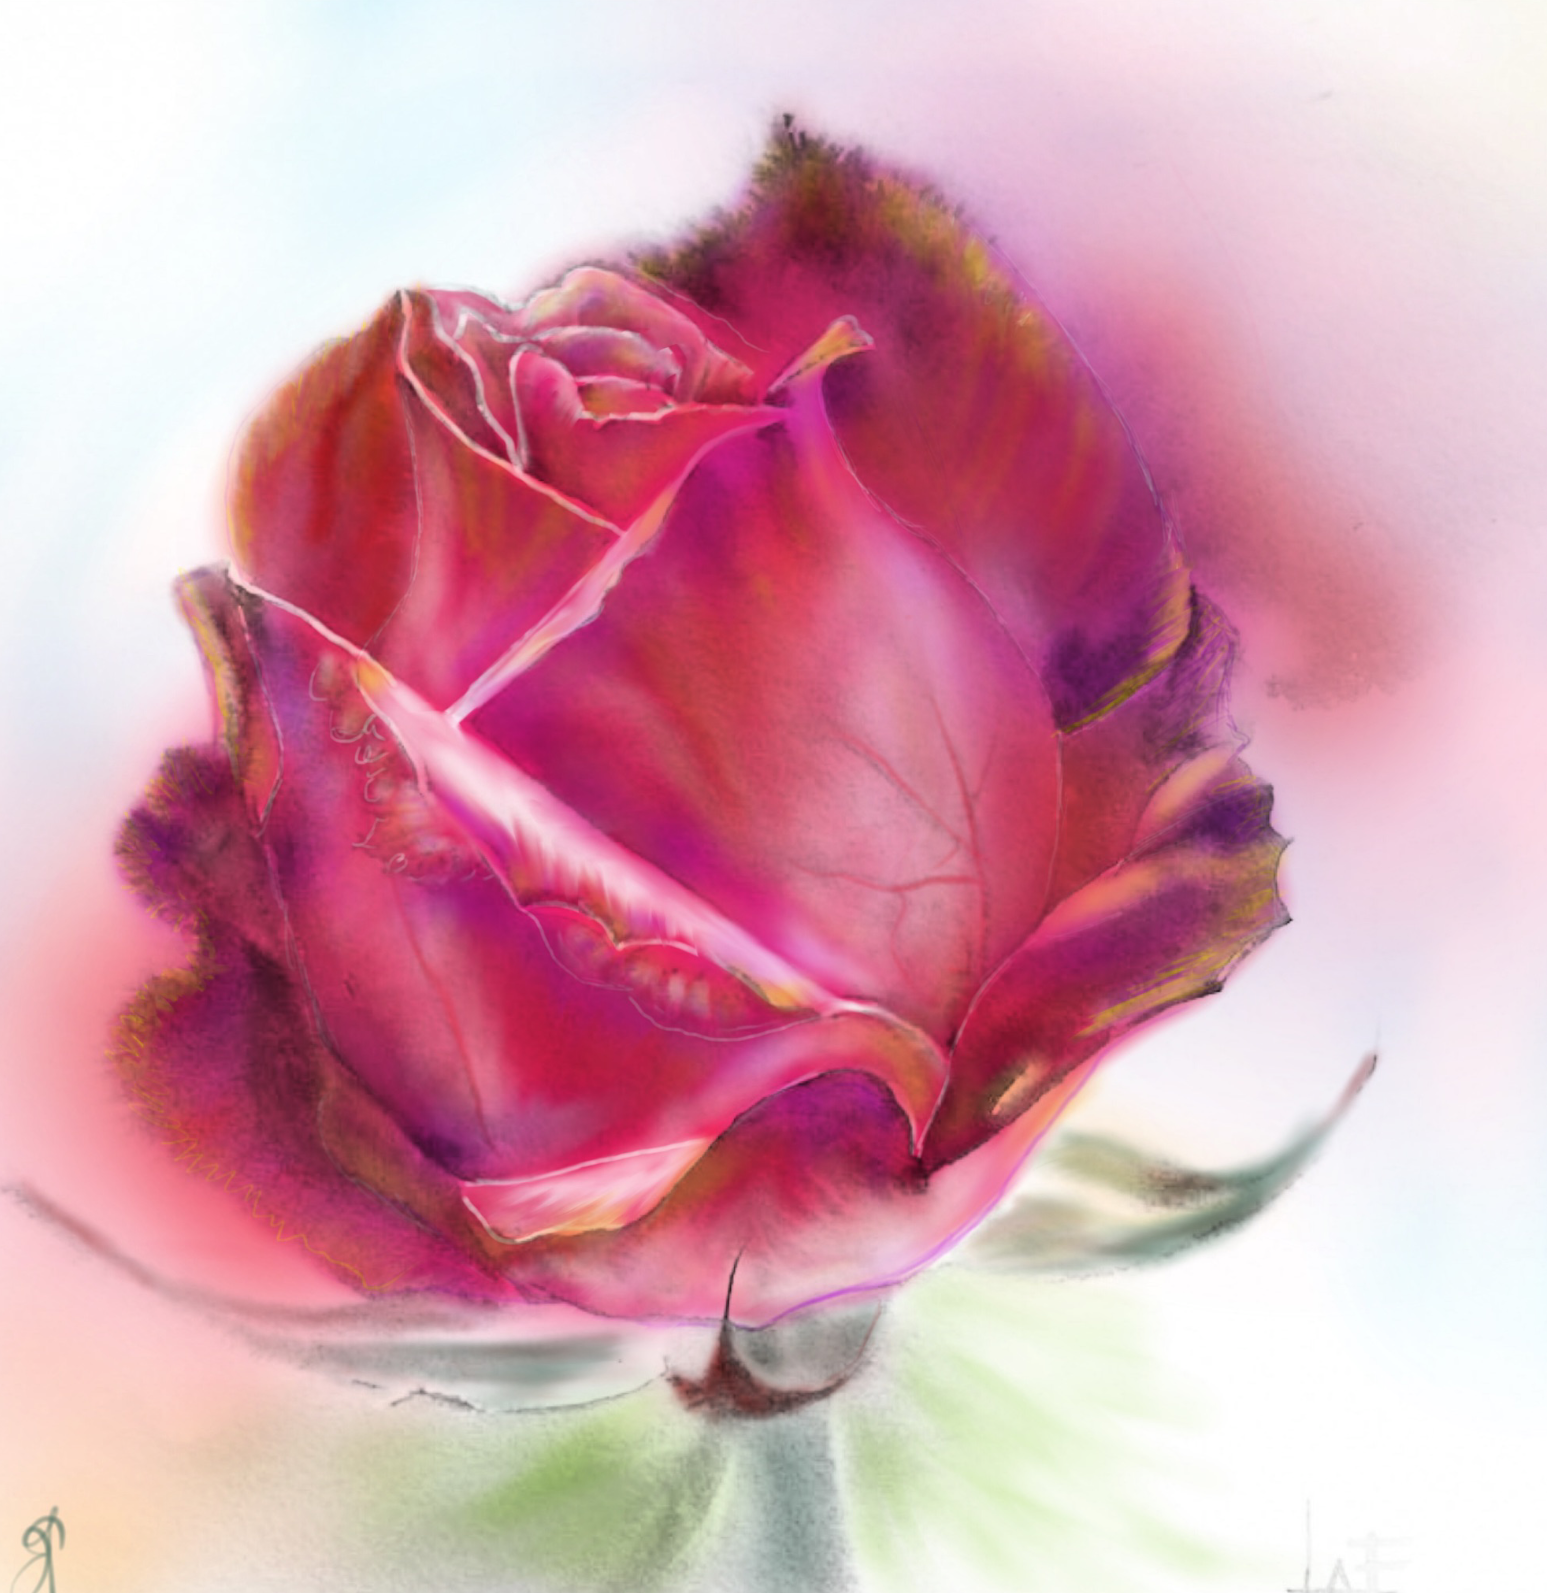 FREEHAND_ROSE_BY_E.RITZ60.JPG